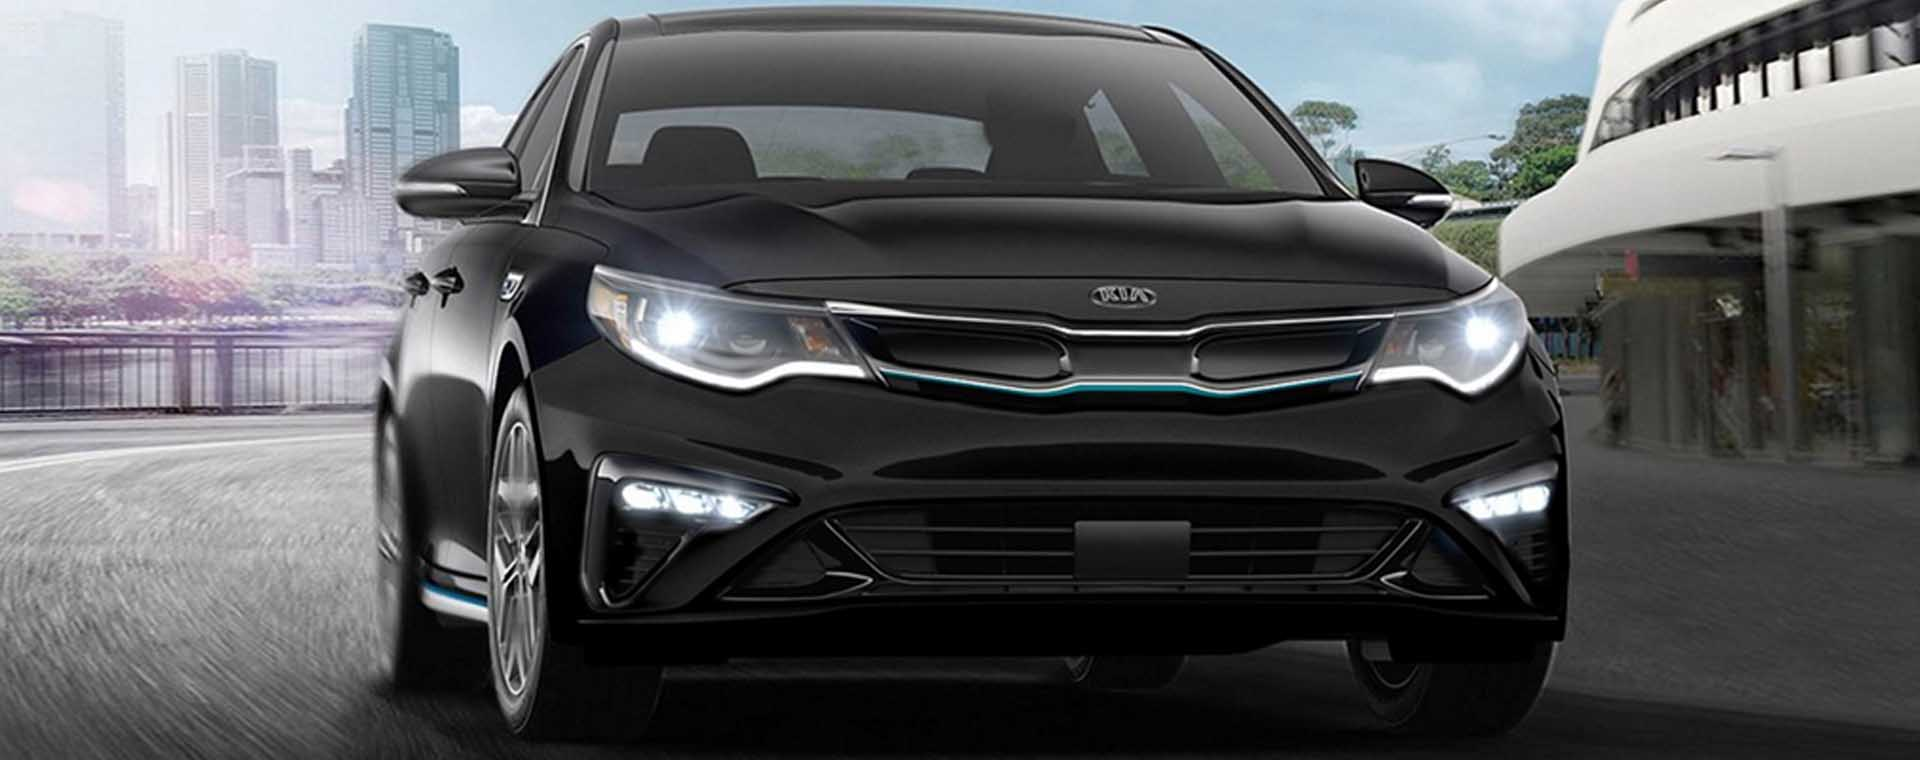 2020 Optima Hybrid for sale in Kingsport, Tennessee